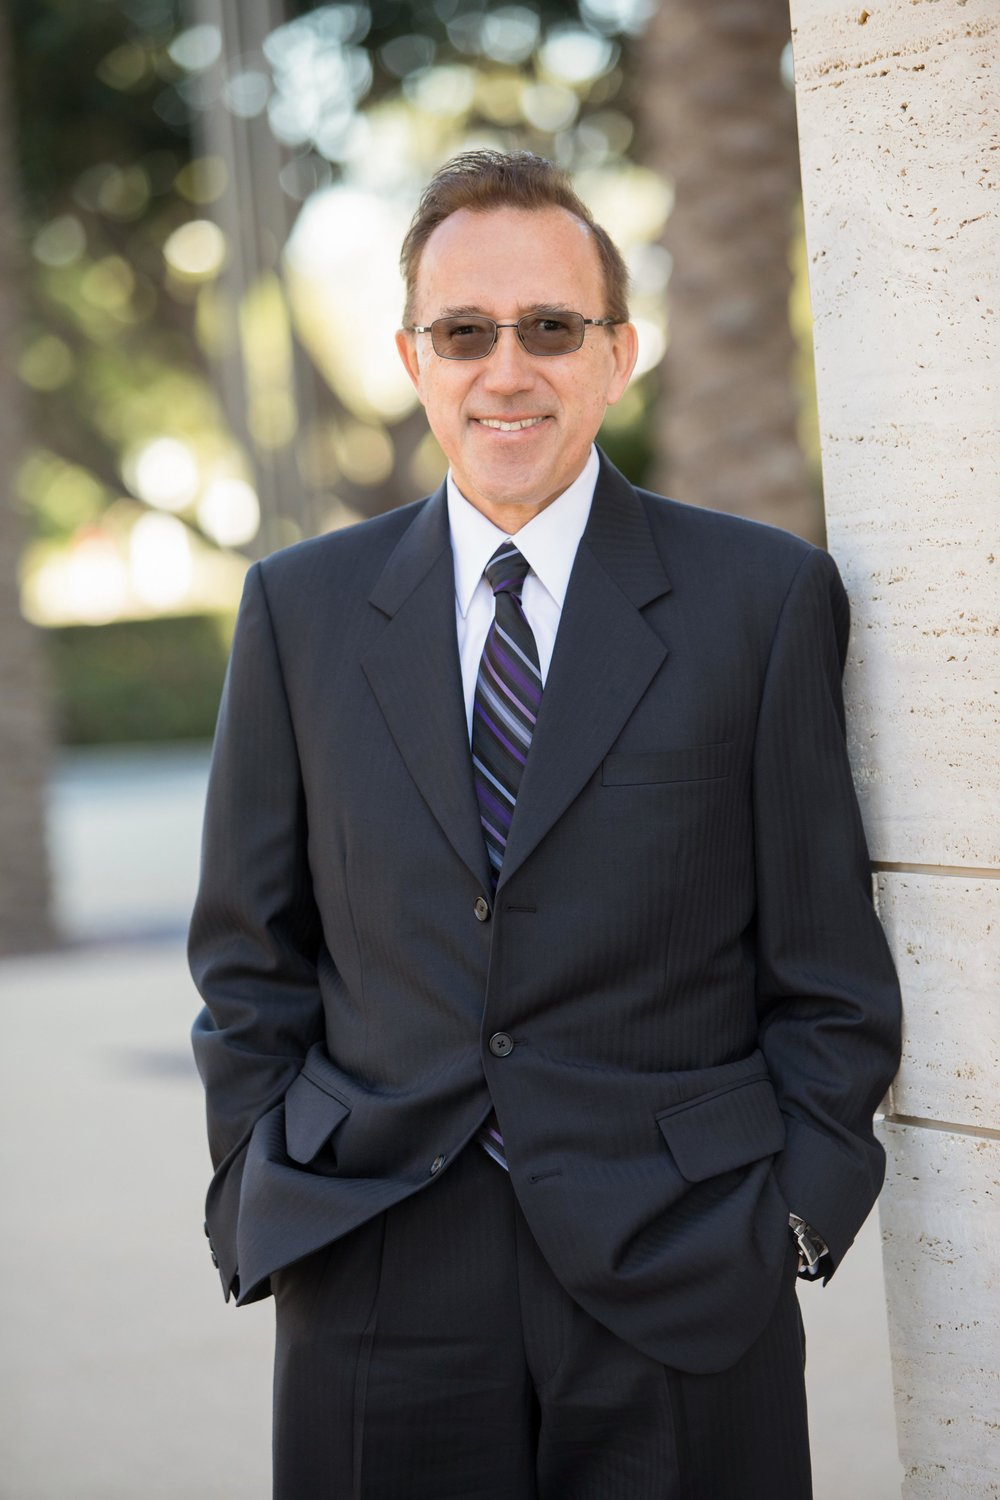 Professional corporate headshot and team photography for Merrill Lynch financial advisors men